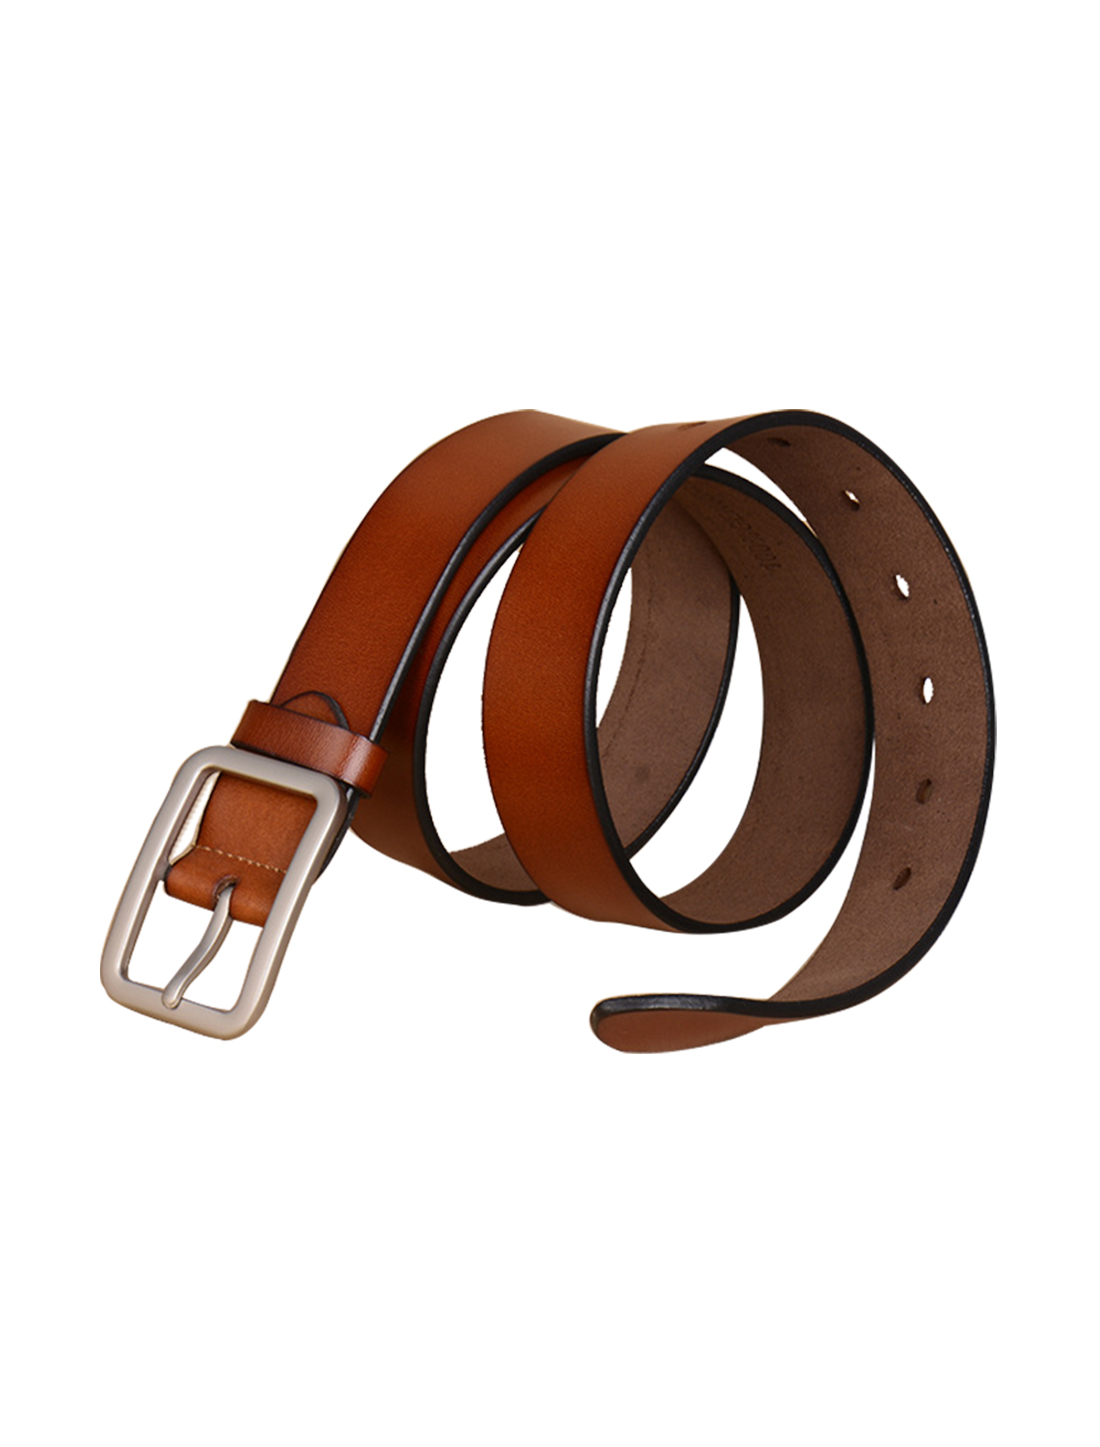 Mens Casual Single Pin Buckle Leather Belt 33mm Width 1 1/4 Brown 115cm